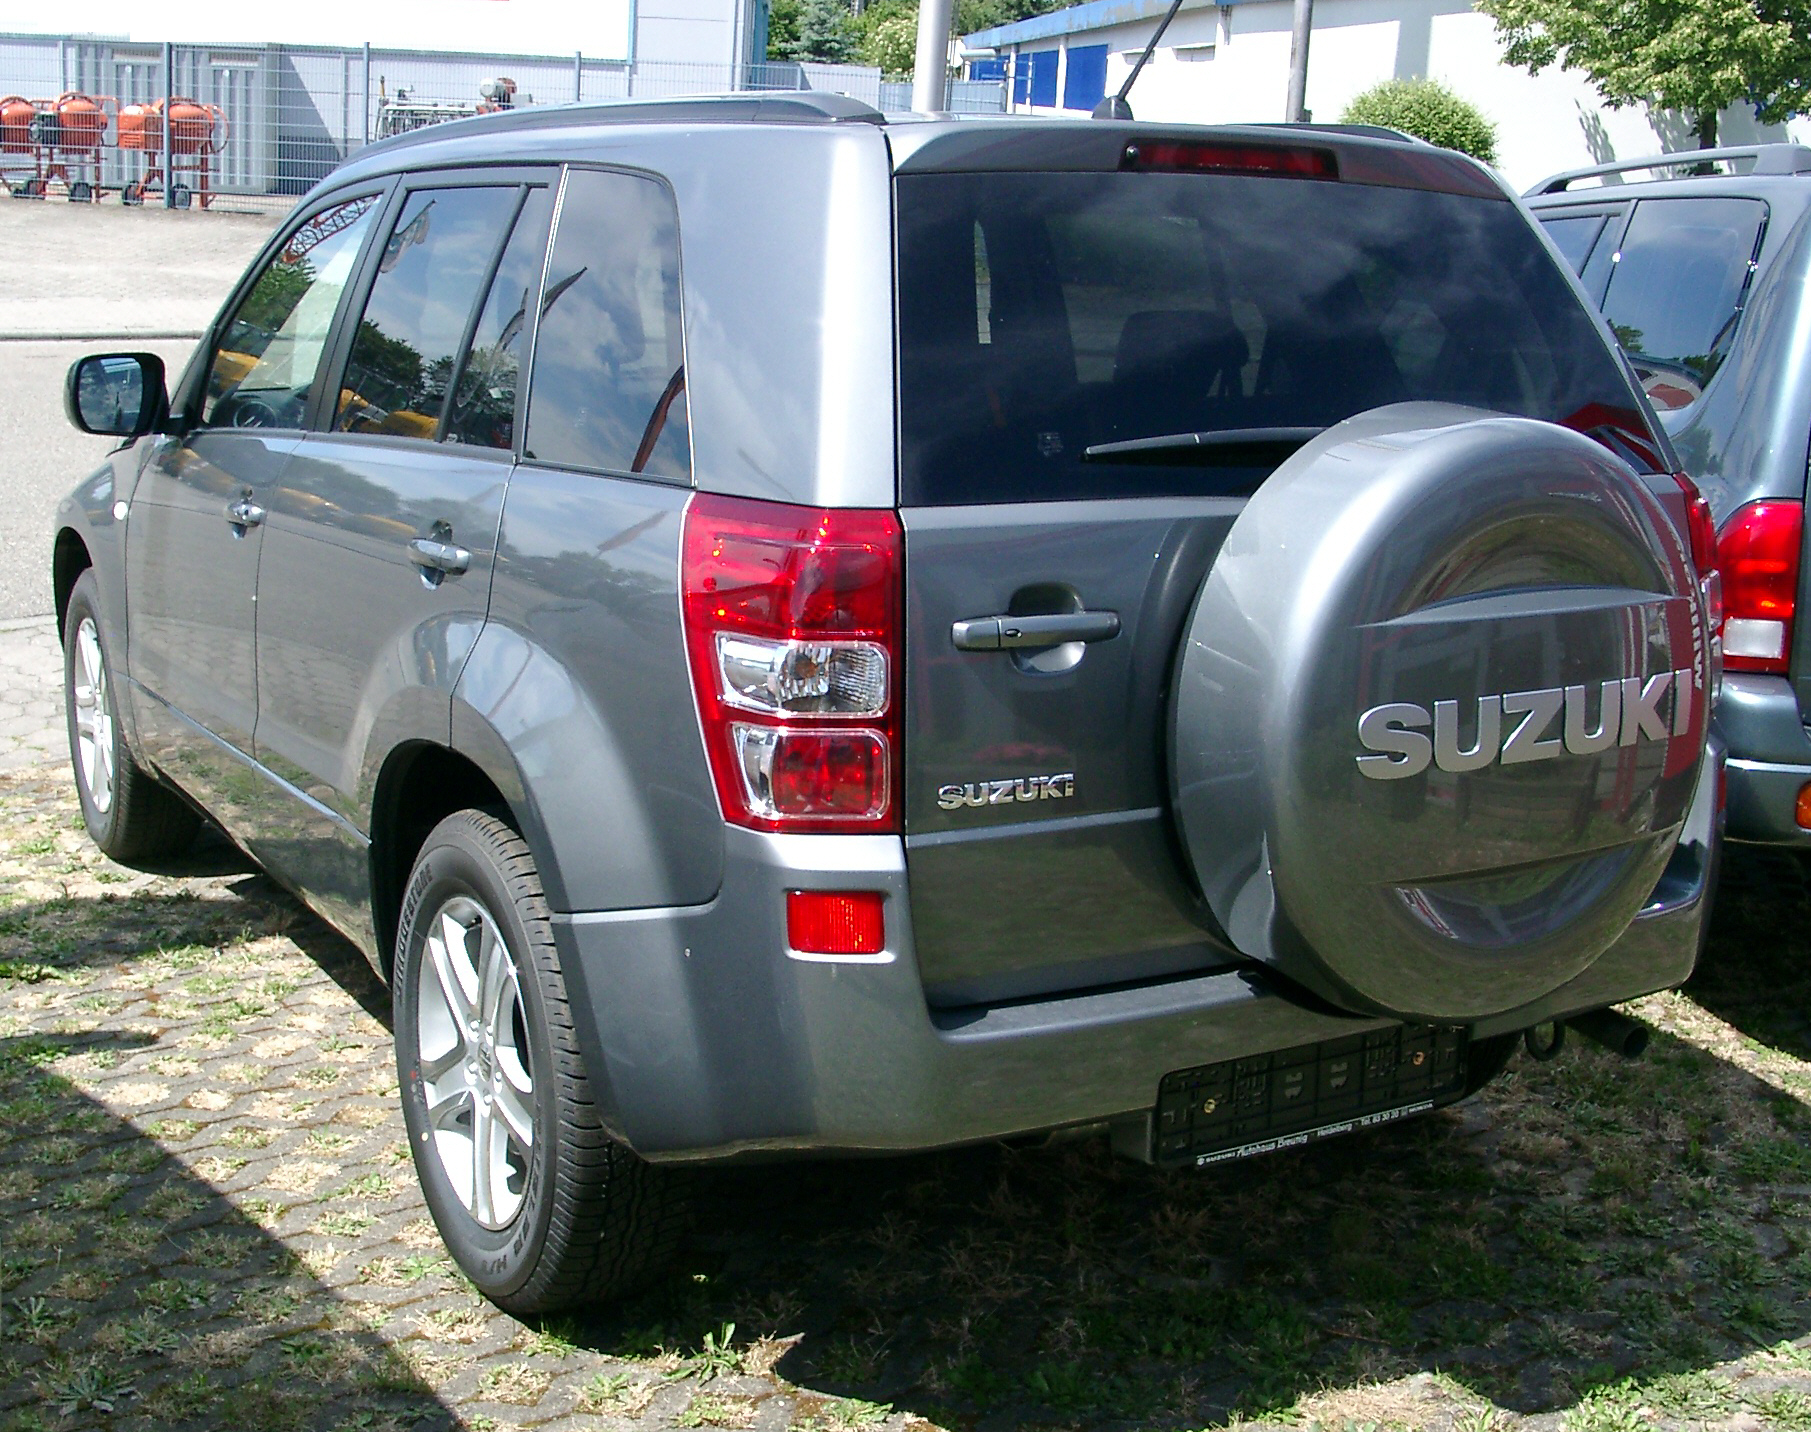 Suzuki Grand Vitara Owner Reviews